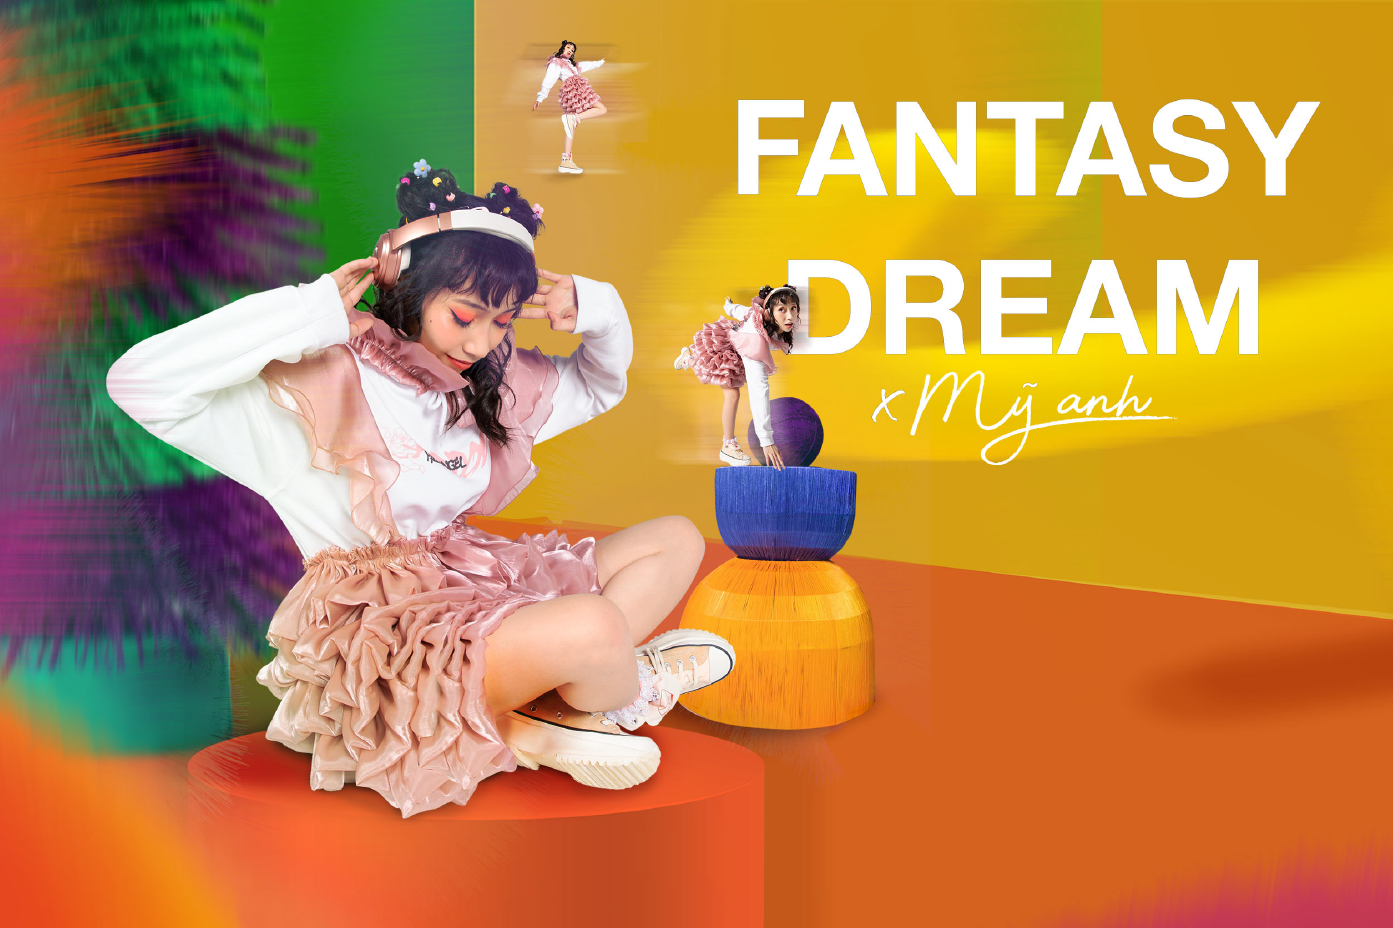 Fantasy Dream: Lotte Department Store x Mỹ Anh